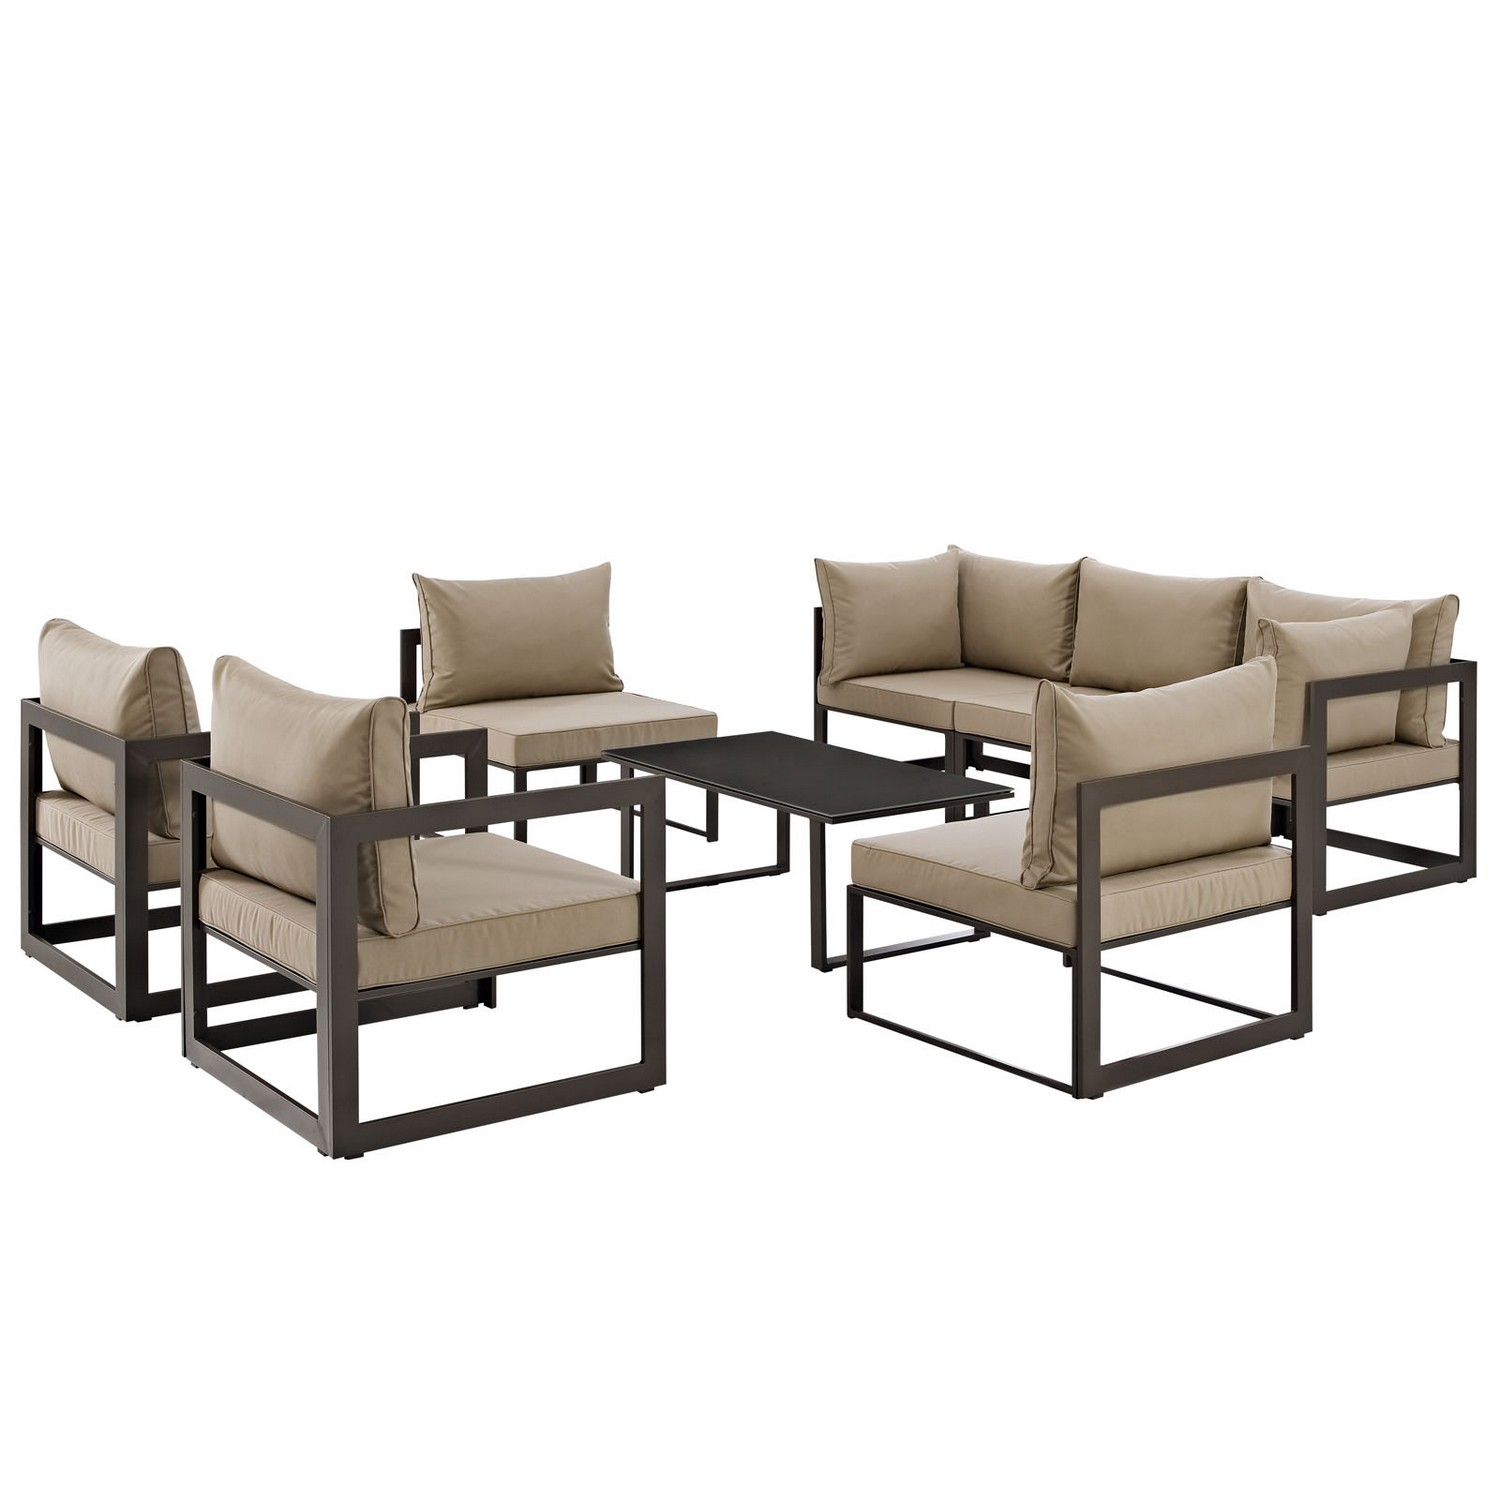 Modway Fortuna 8 Piece Outdoor Patio Sectional Sofa Set - Brown